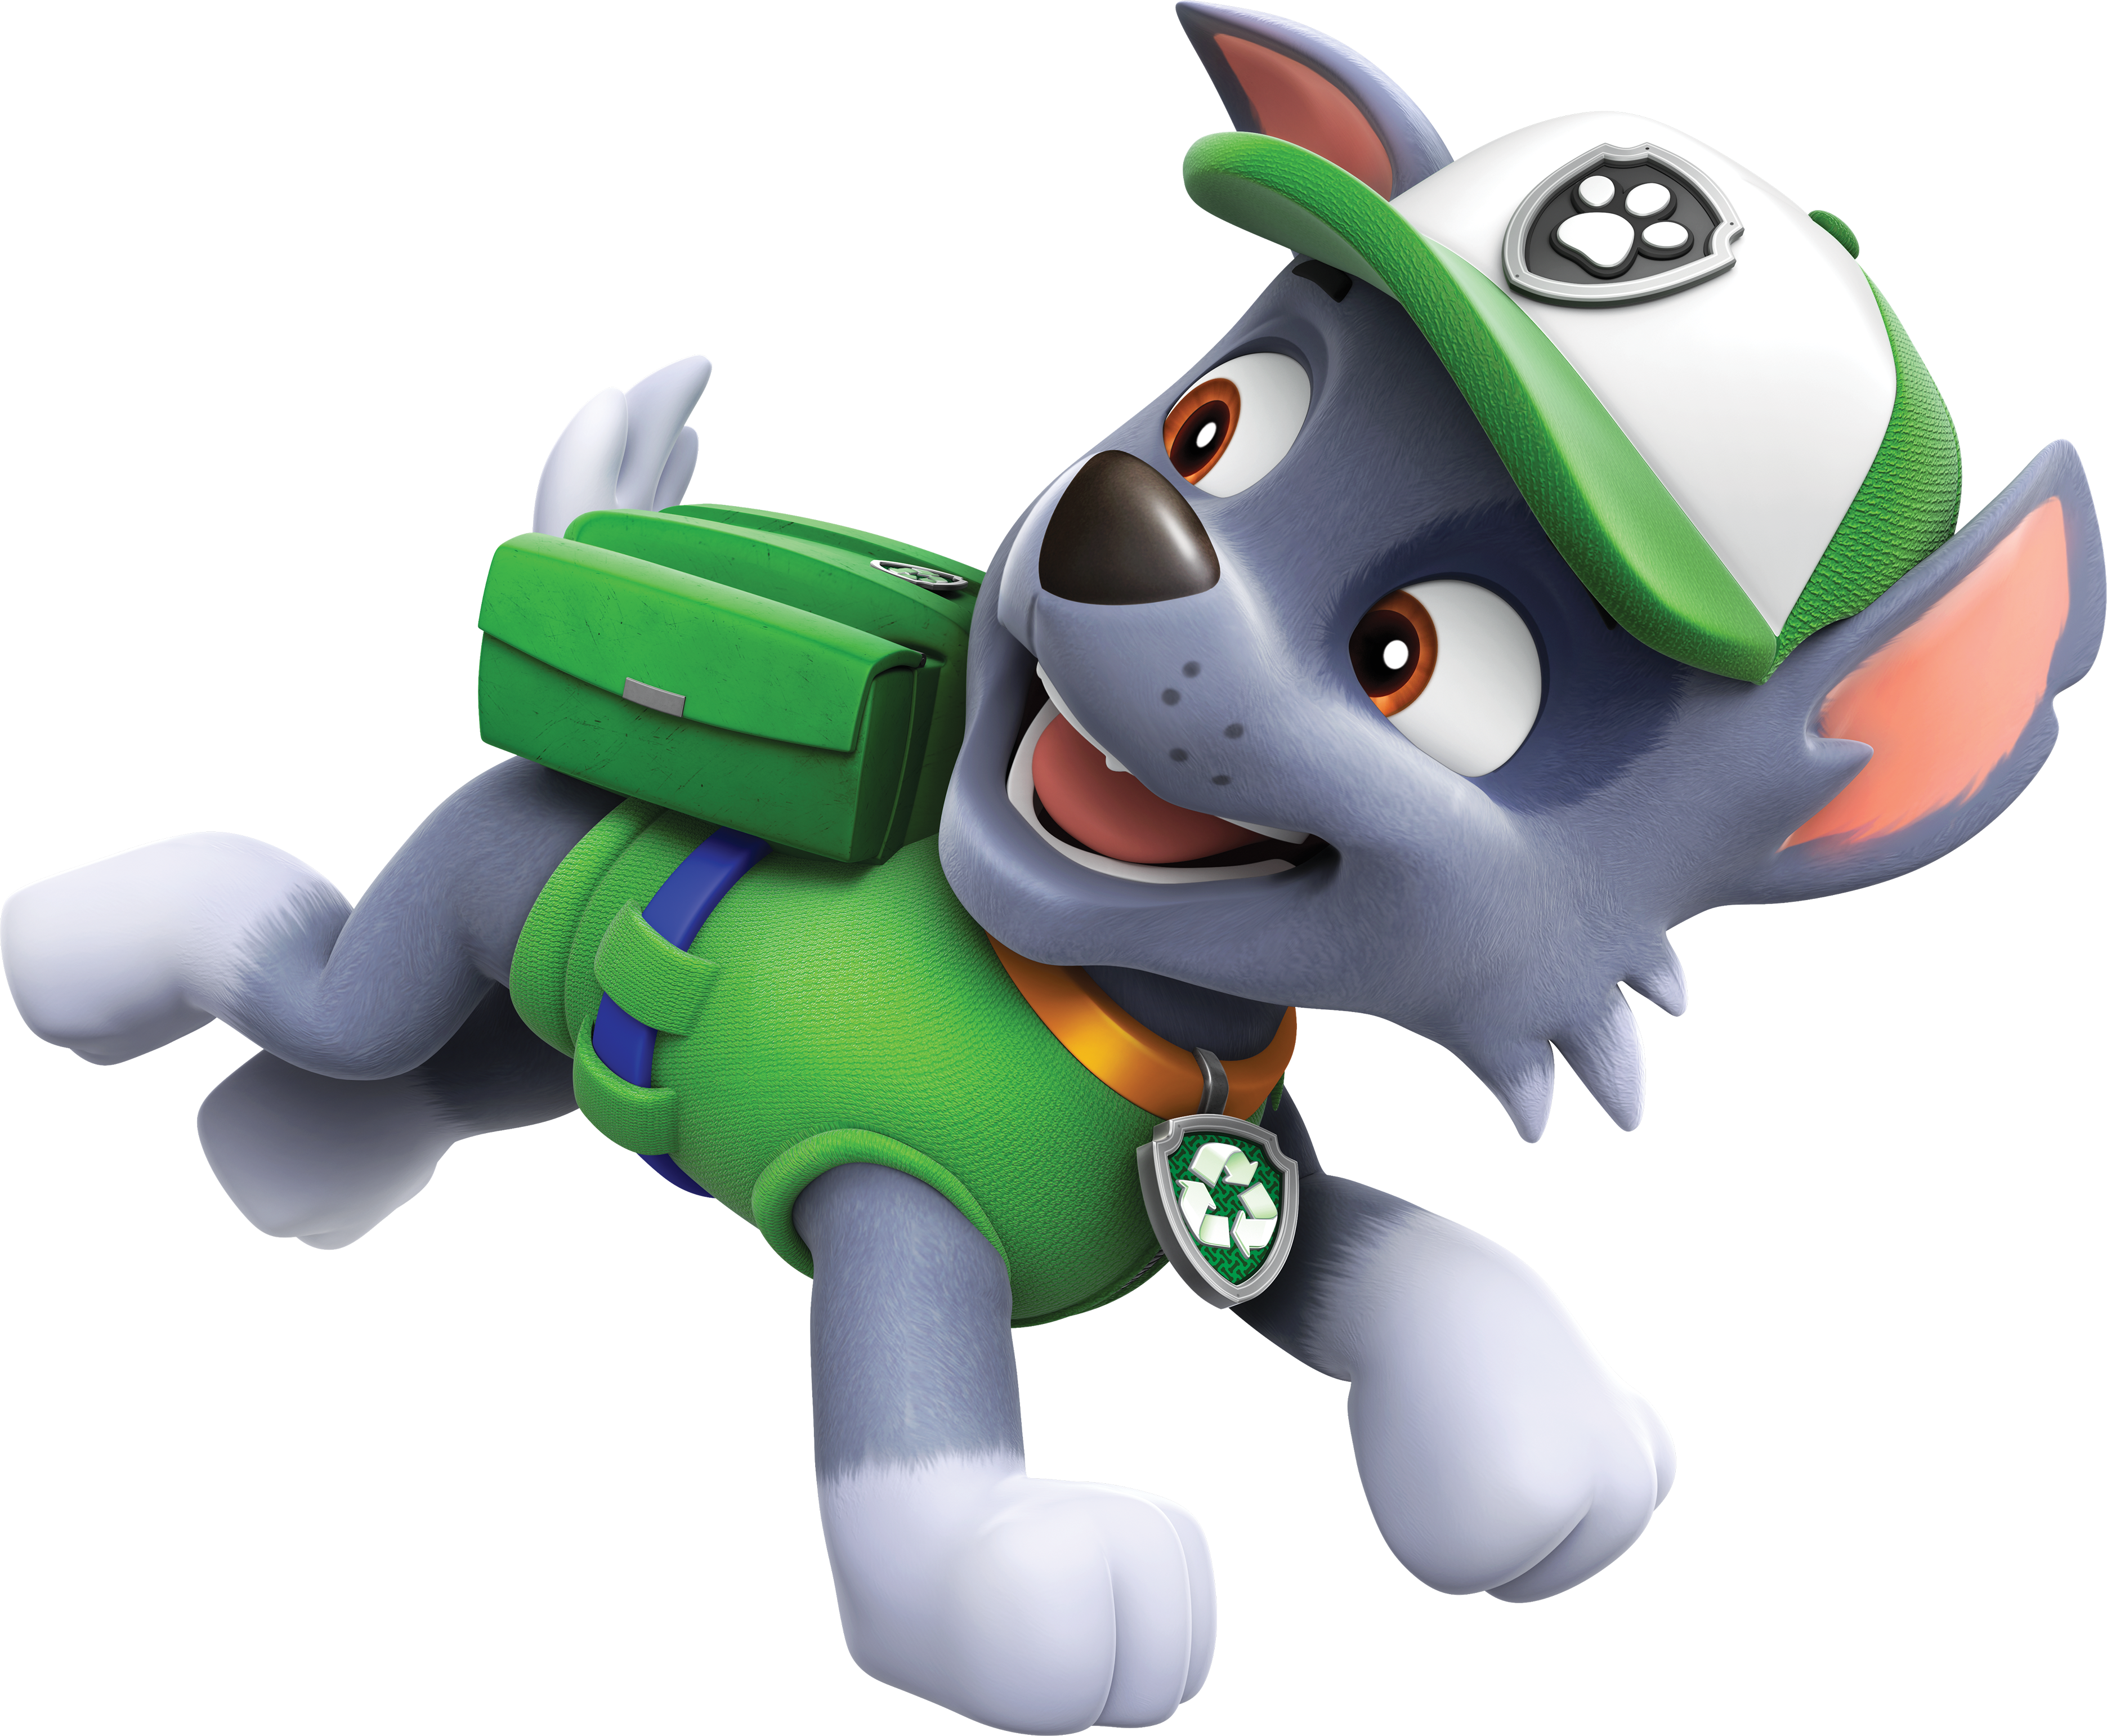 Halloween paw patrol clipart free picture black and white download Rocky/Gallery | Pinterest | Paw patrol rocky, Paw patrol and Paw ... picture black and white download